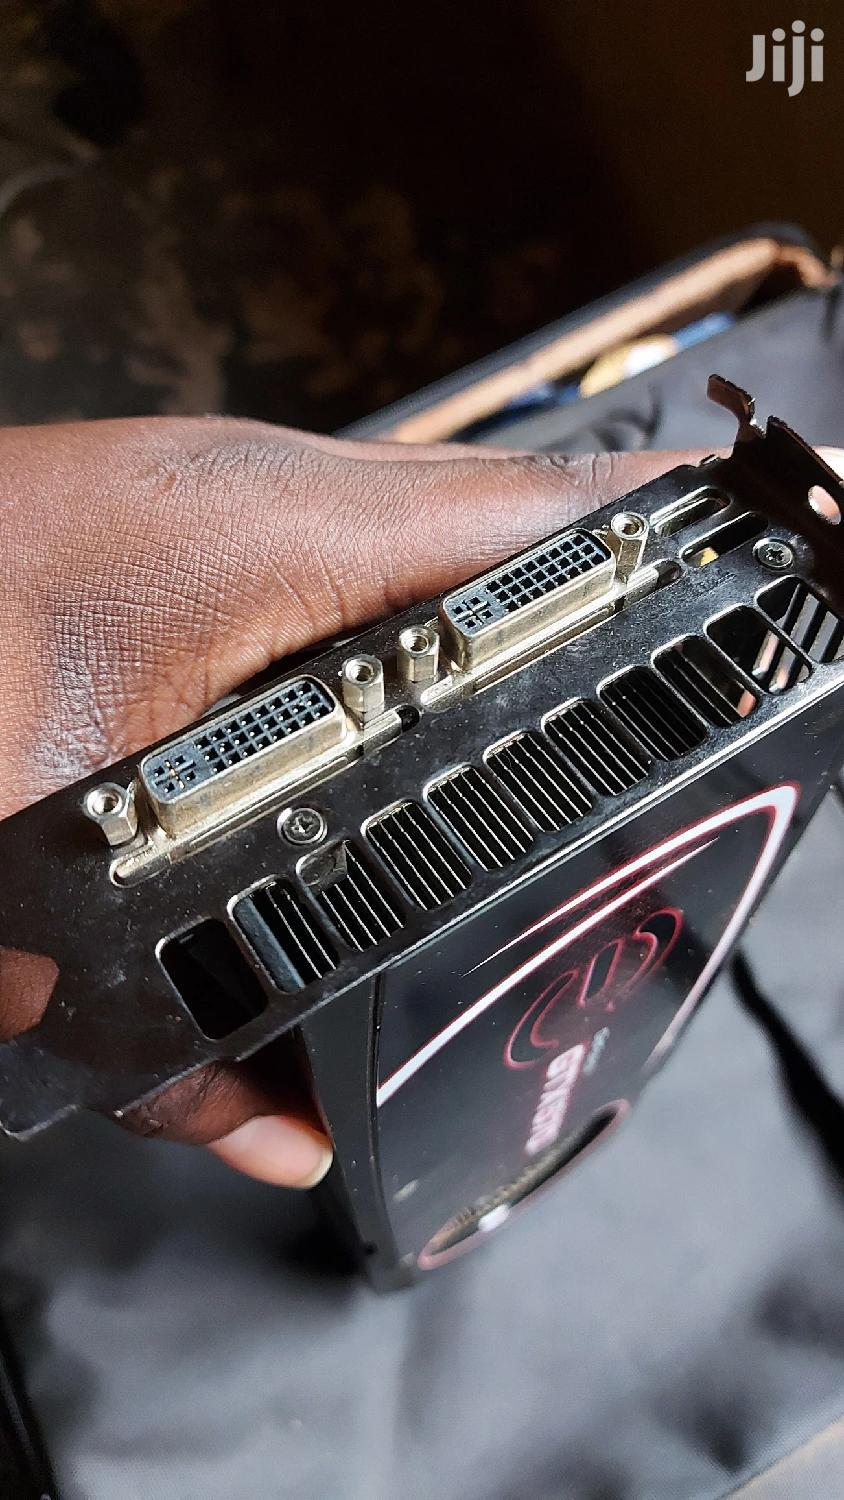 Nvidia Gtx 570 1GB Dedicated With Dvi To Vga Converter | Computer Hardware for sale in Kampala, Central Region, Uganda